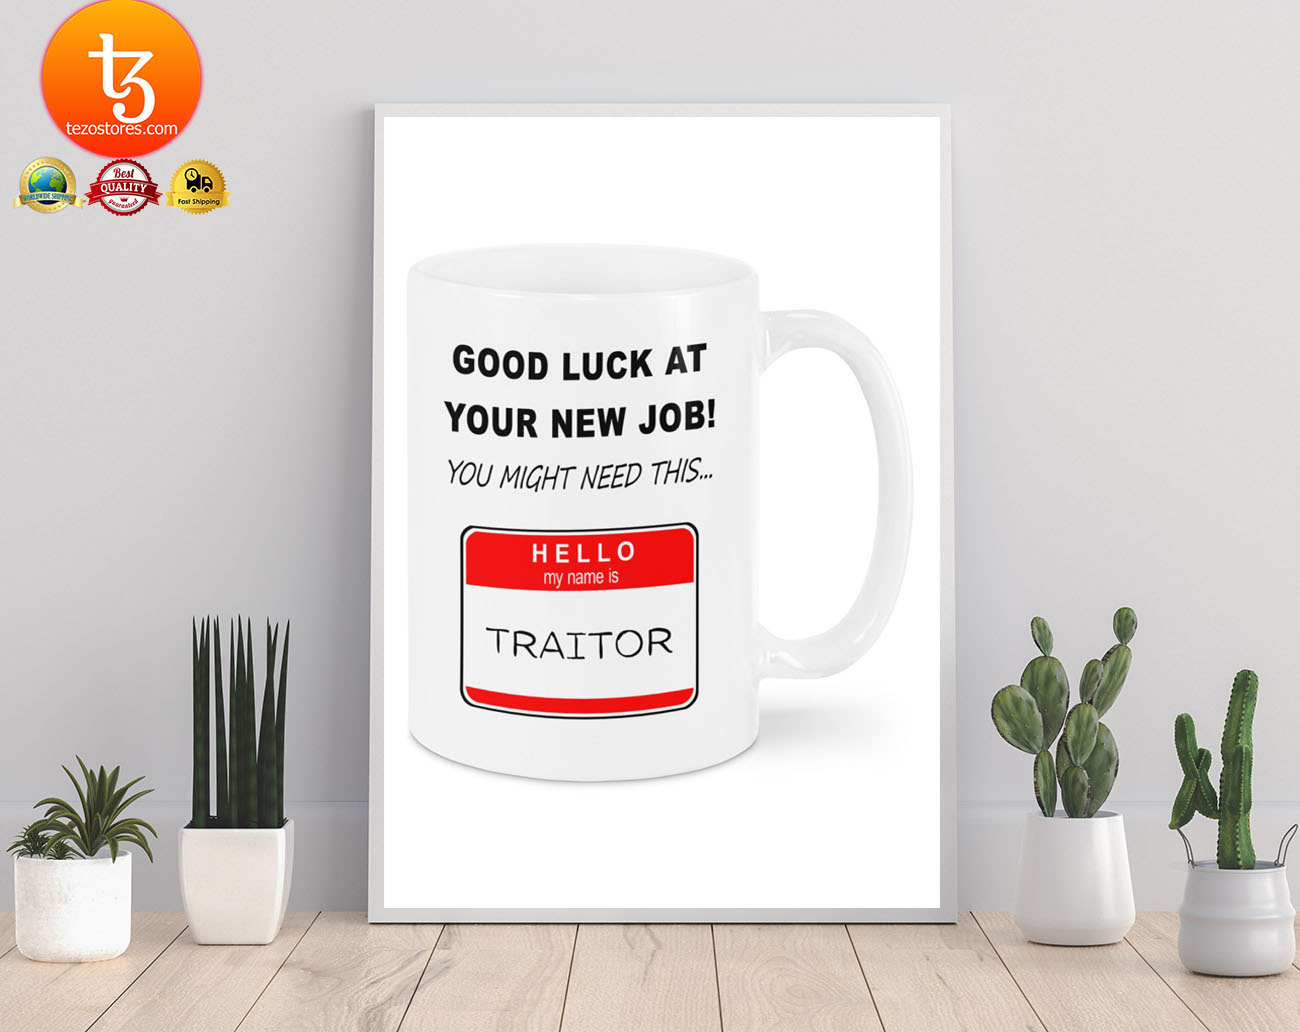 Good luck at your new job you might need this hello my name is traitor mug